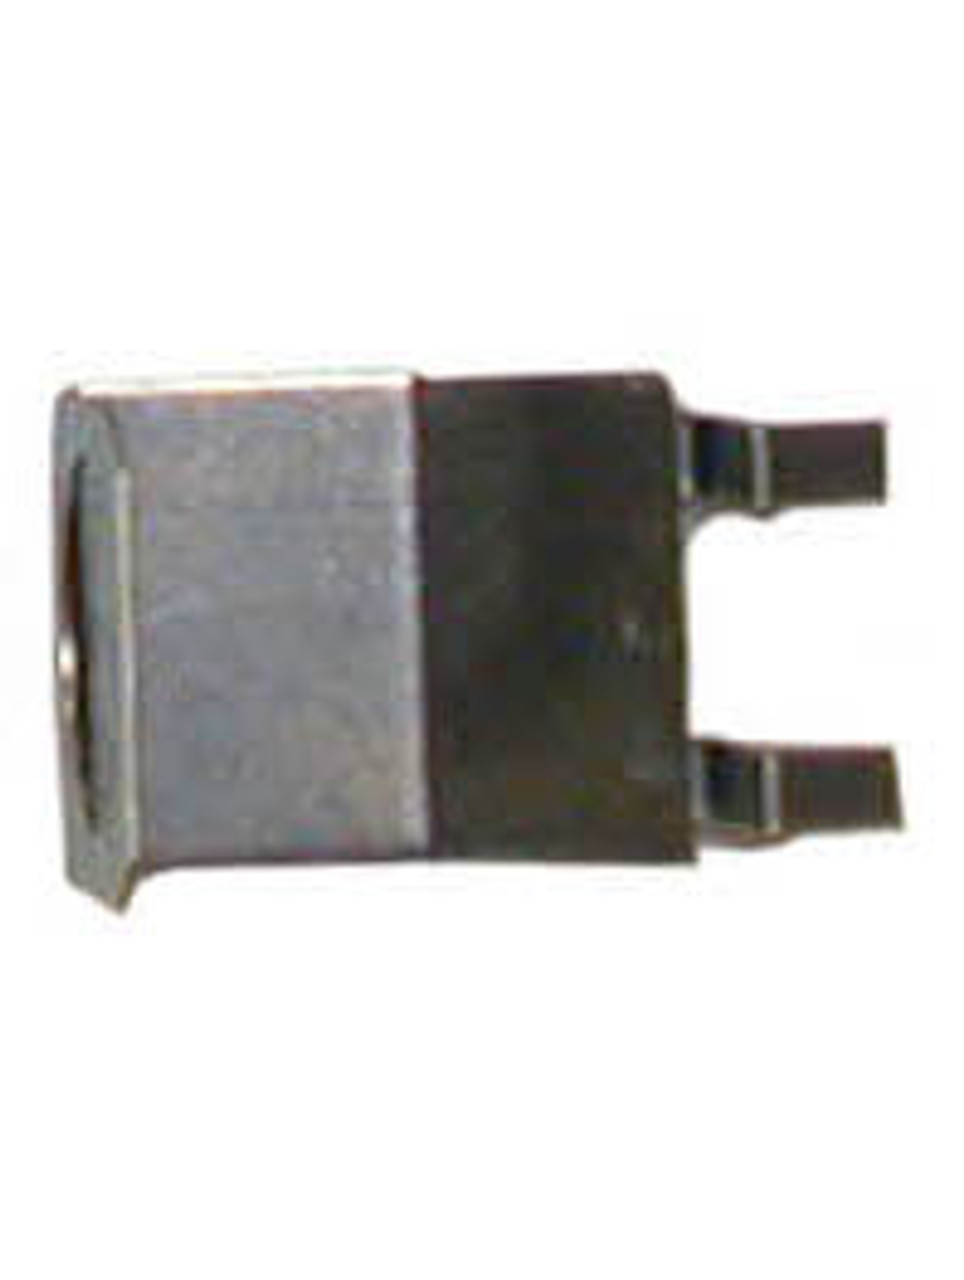 46-132 --- Adjuster Clip for Thread End of Adjuster for Dexter Electric Brakes